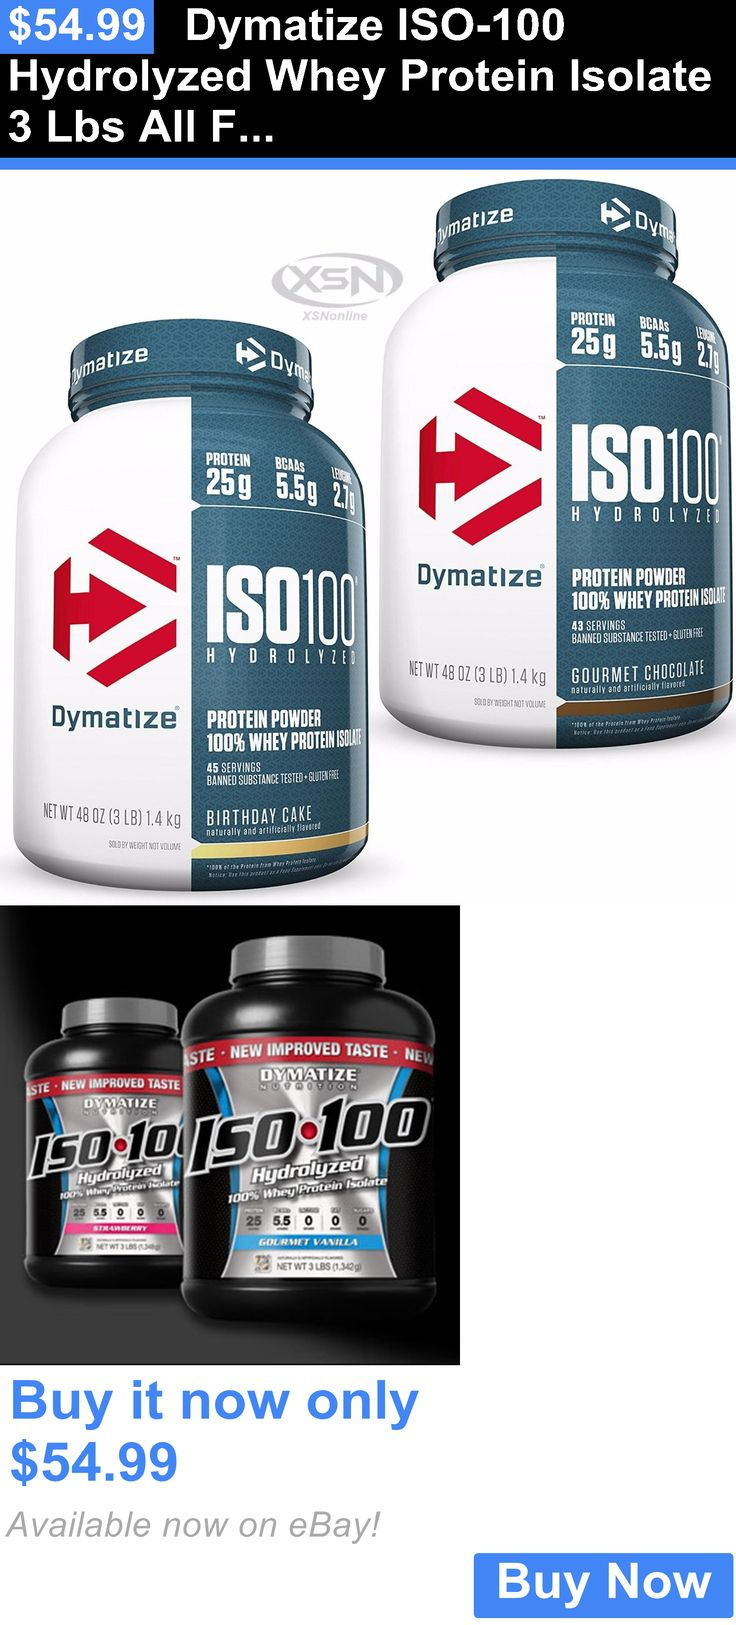 Other Sports Supplements: Dymatize Iso-100 Hydrolyzed Whey Protein Isolate 3 Lbs All Flavors Free Usa Ship BUY IT NOW ONLY: $54.99